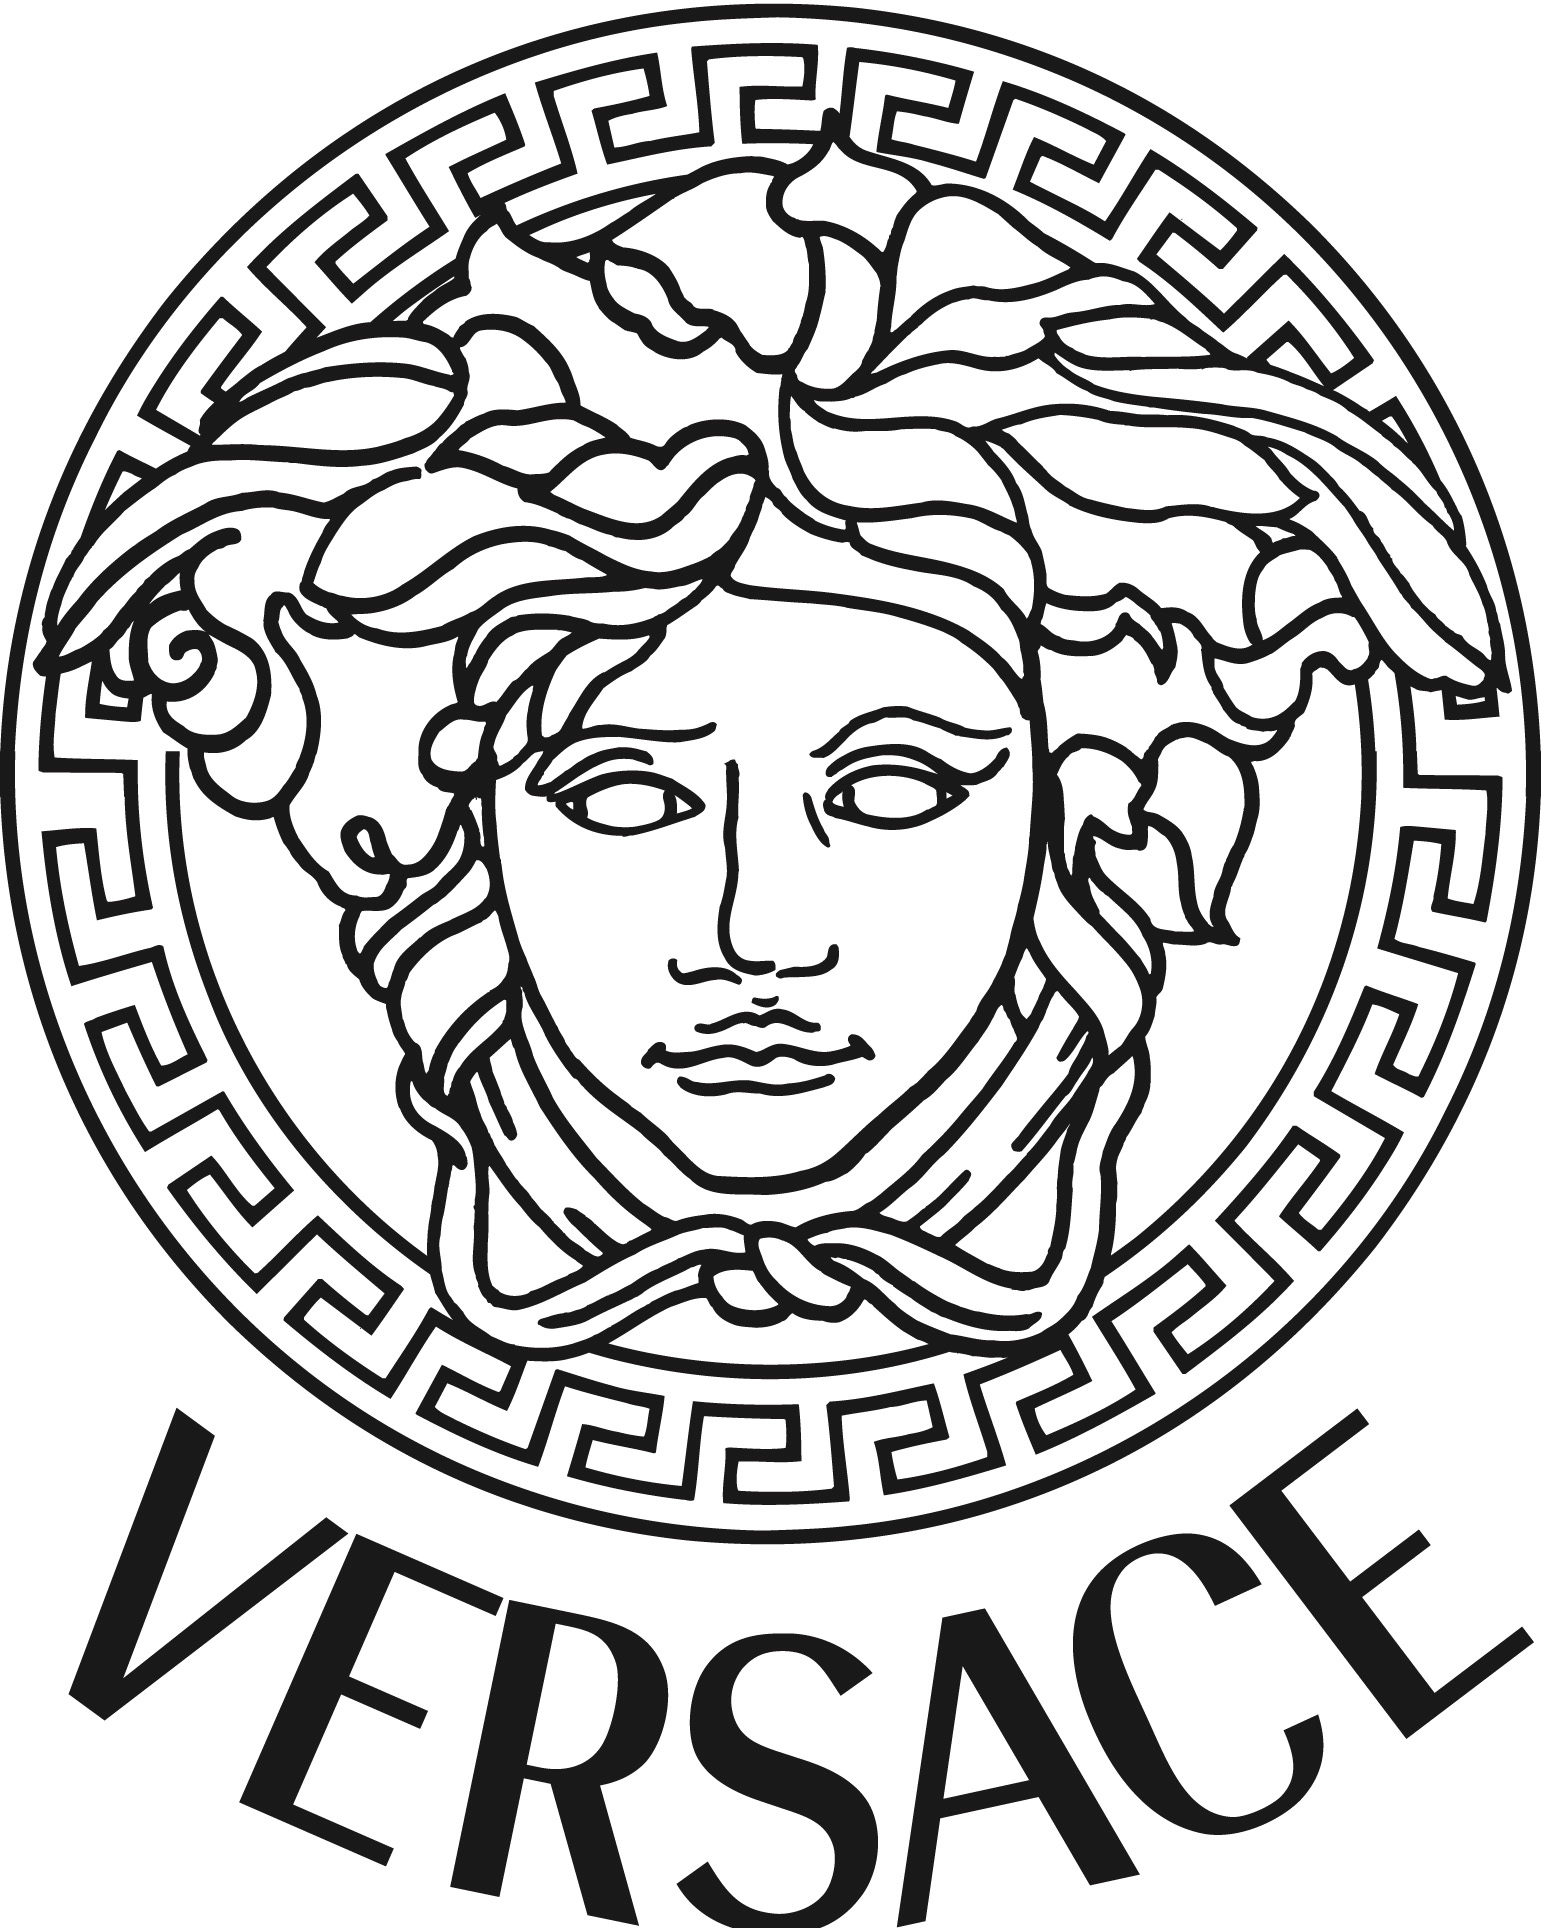 {'liked': 0L, 'description': u'Gianni Versace S.p.A. usually referred to as Versace, is an Italian fashion company and trade name founded by Gianni Versace in 1978.', 'fcount': 12346, 'logo': u'https://d2go30nqlx7k6d.cloudfront.net/designer/versace-1470104219', 'viewed': 52702L, 'category': u'p', 'name': u'VERSACE', 'url': 'VERSACE', 'locname': u'VERSACE', 'mcount': 9382, 'haswebsite': True}